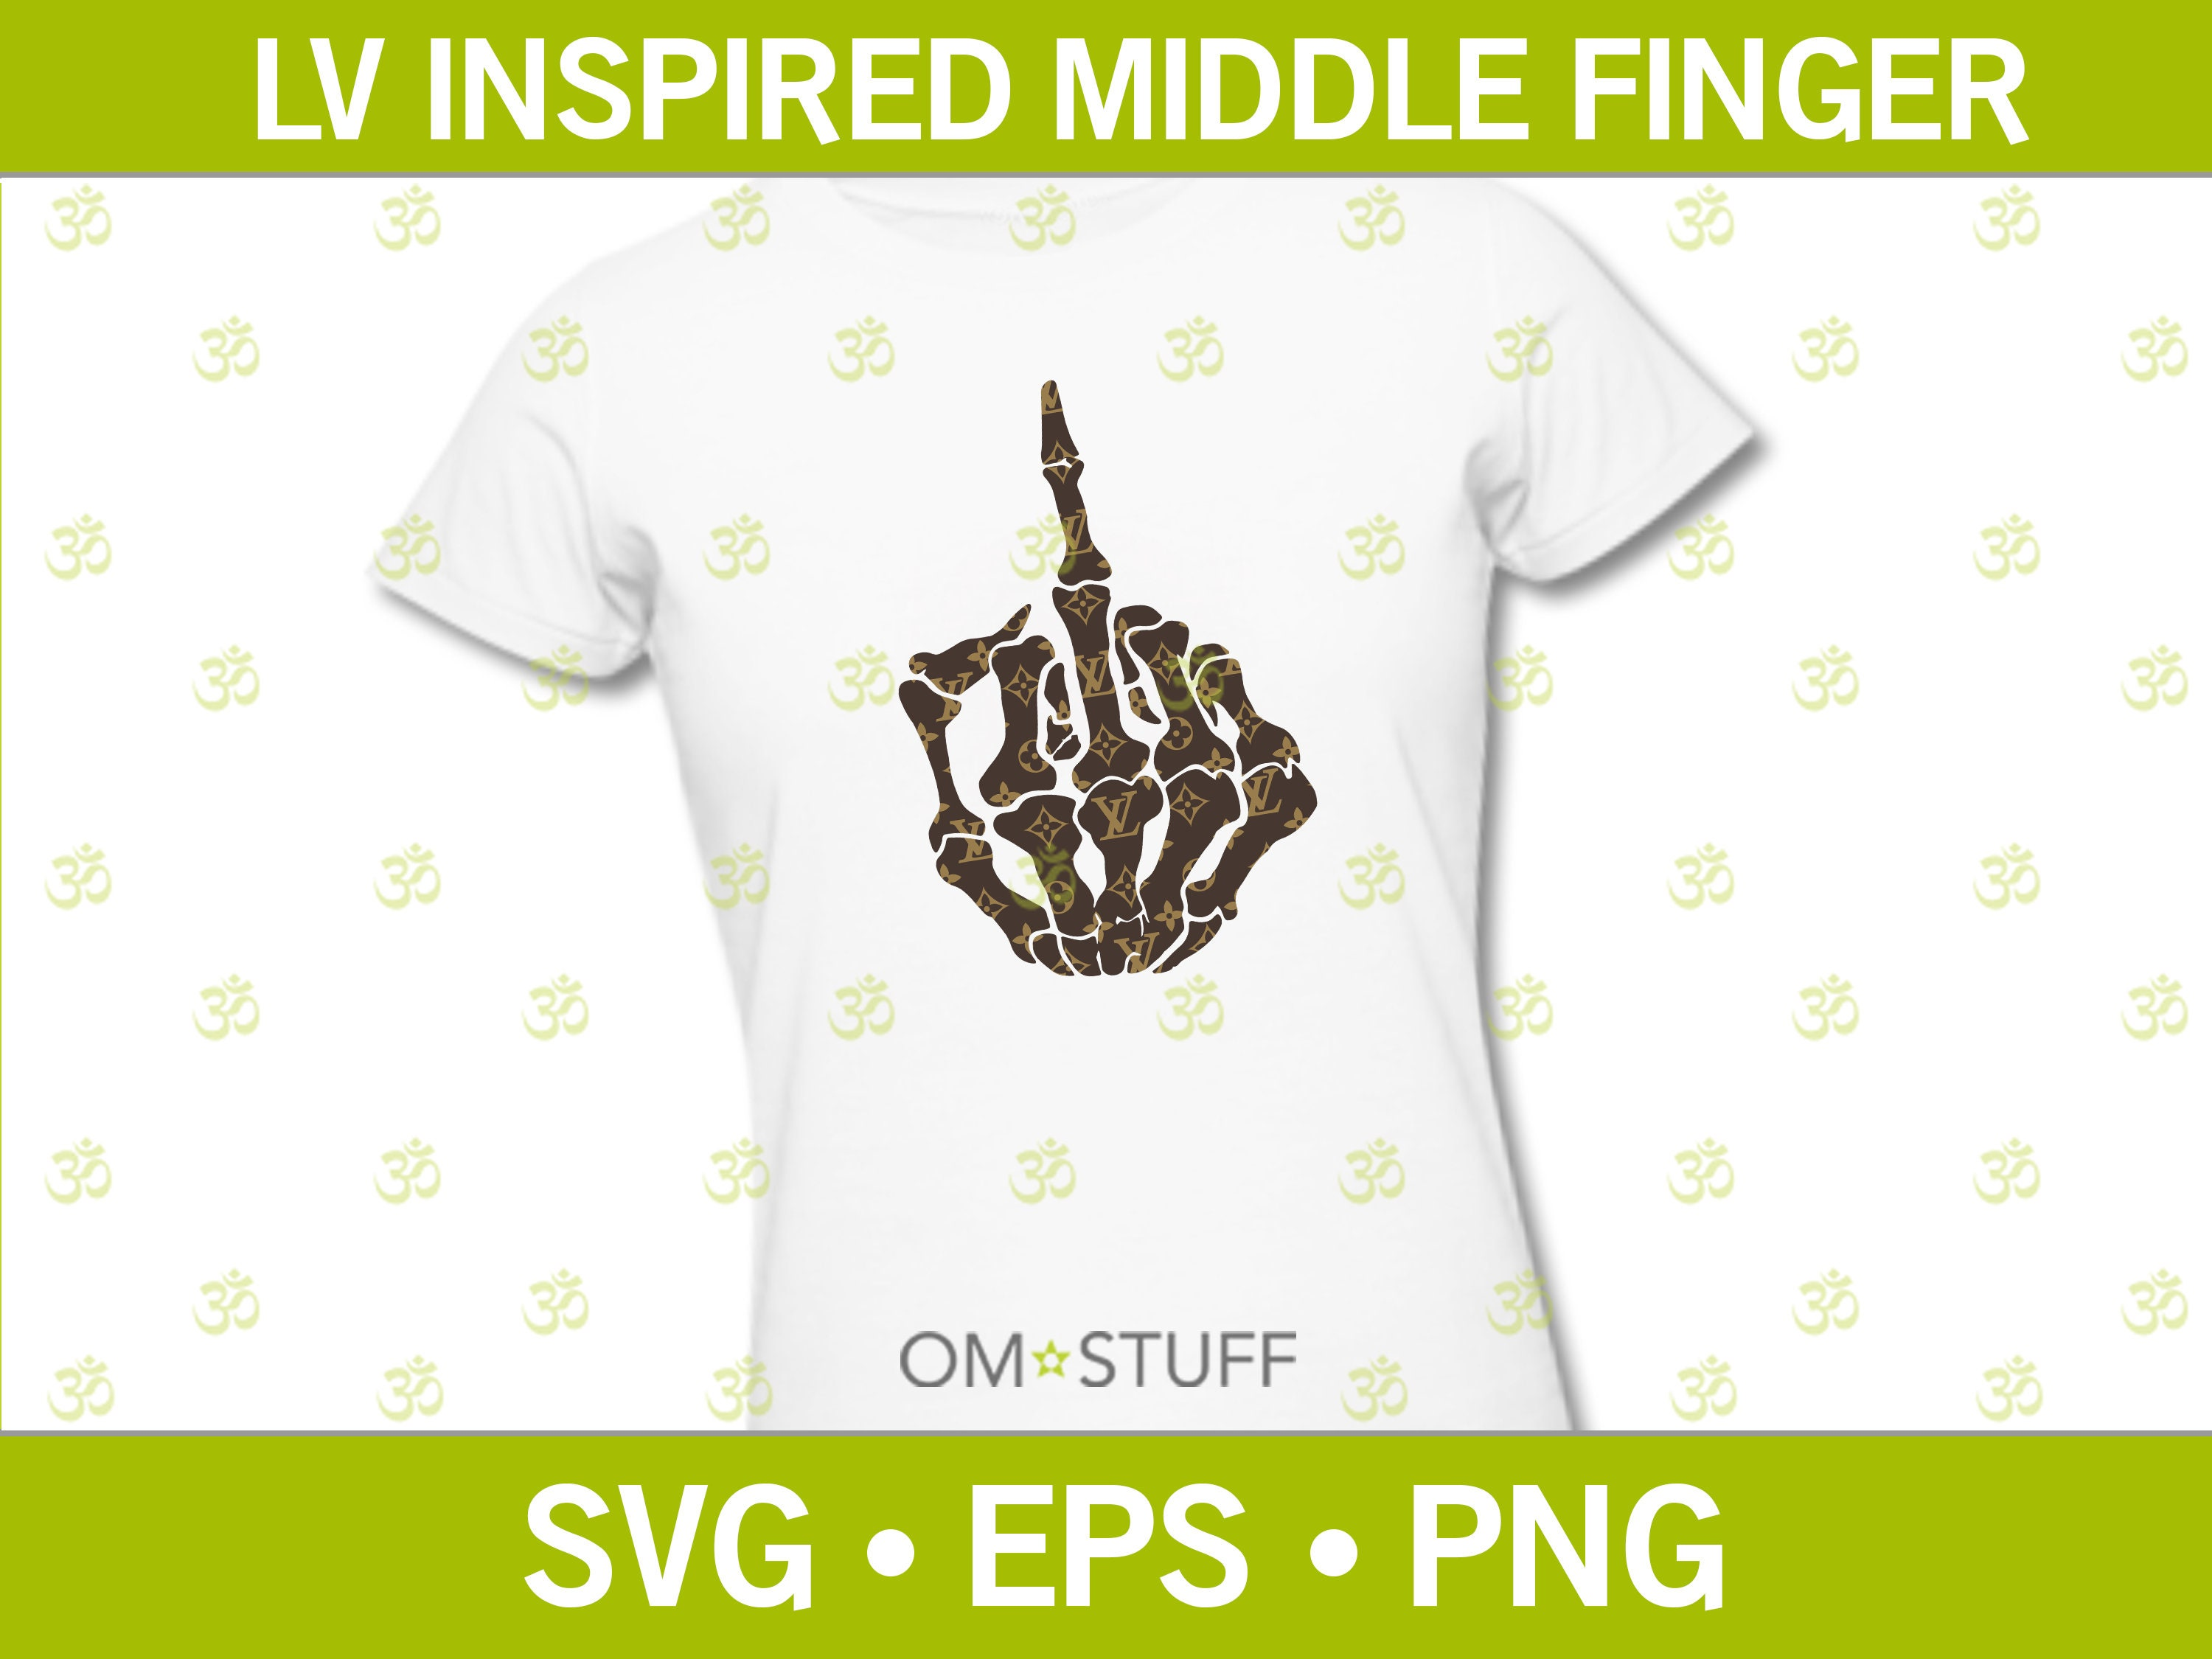 Lv Inspired Louis Vuitton Svg Skeleton Middle Finger Design Etsy